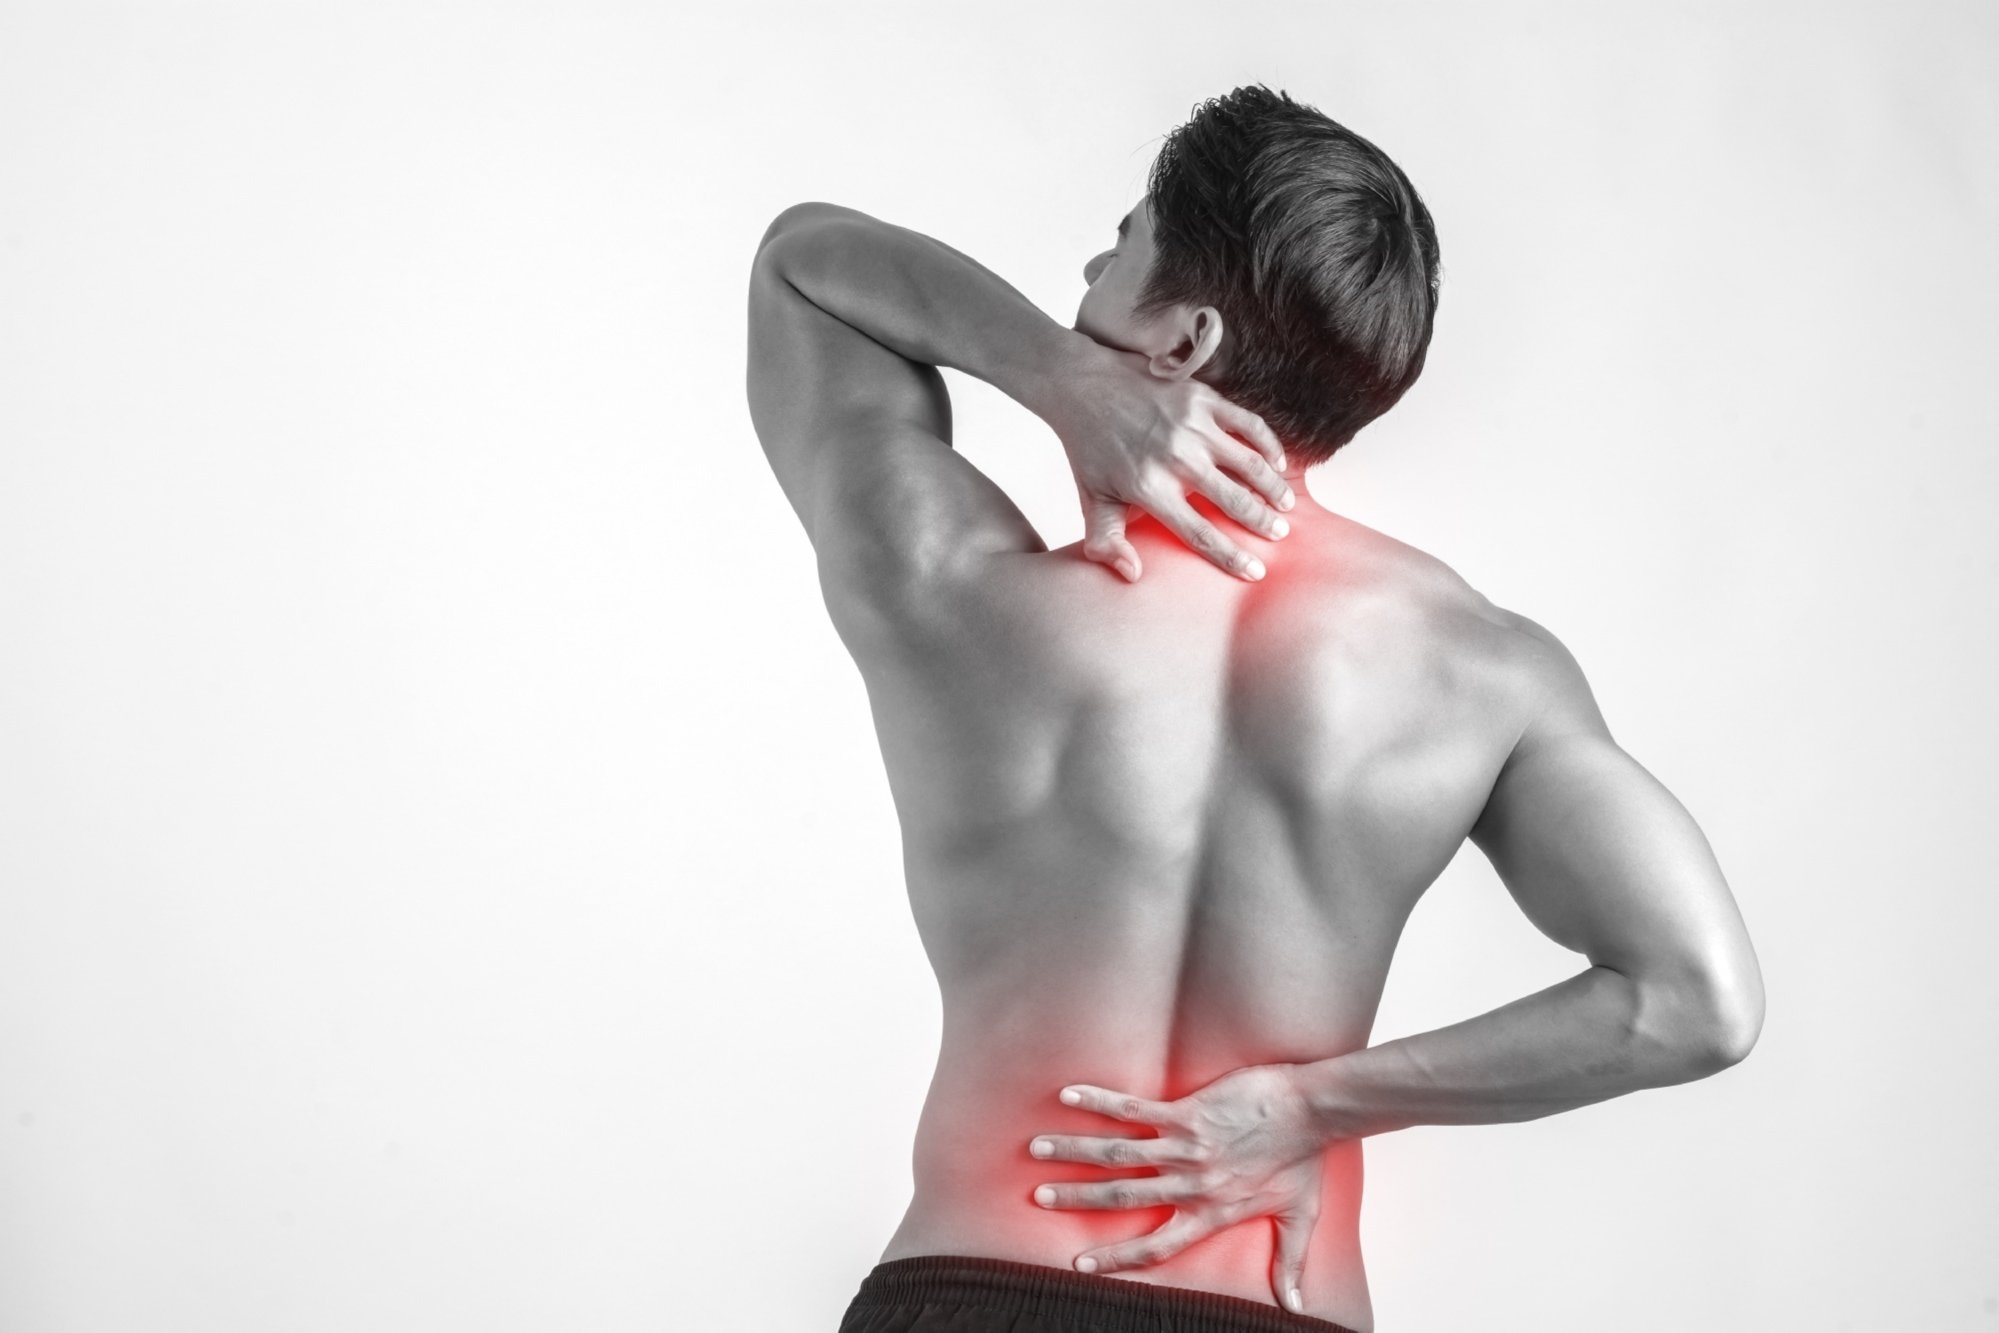 man rubbing his painful back because of back pain